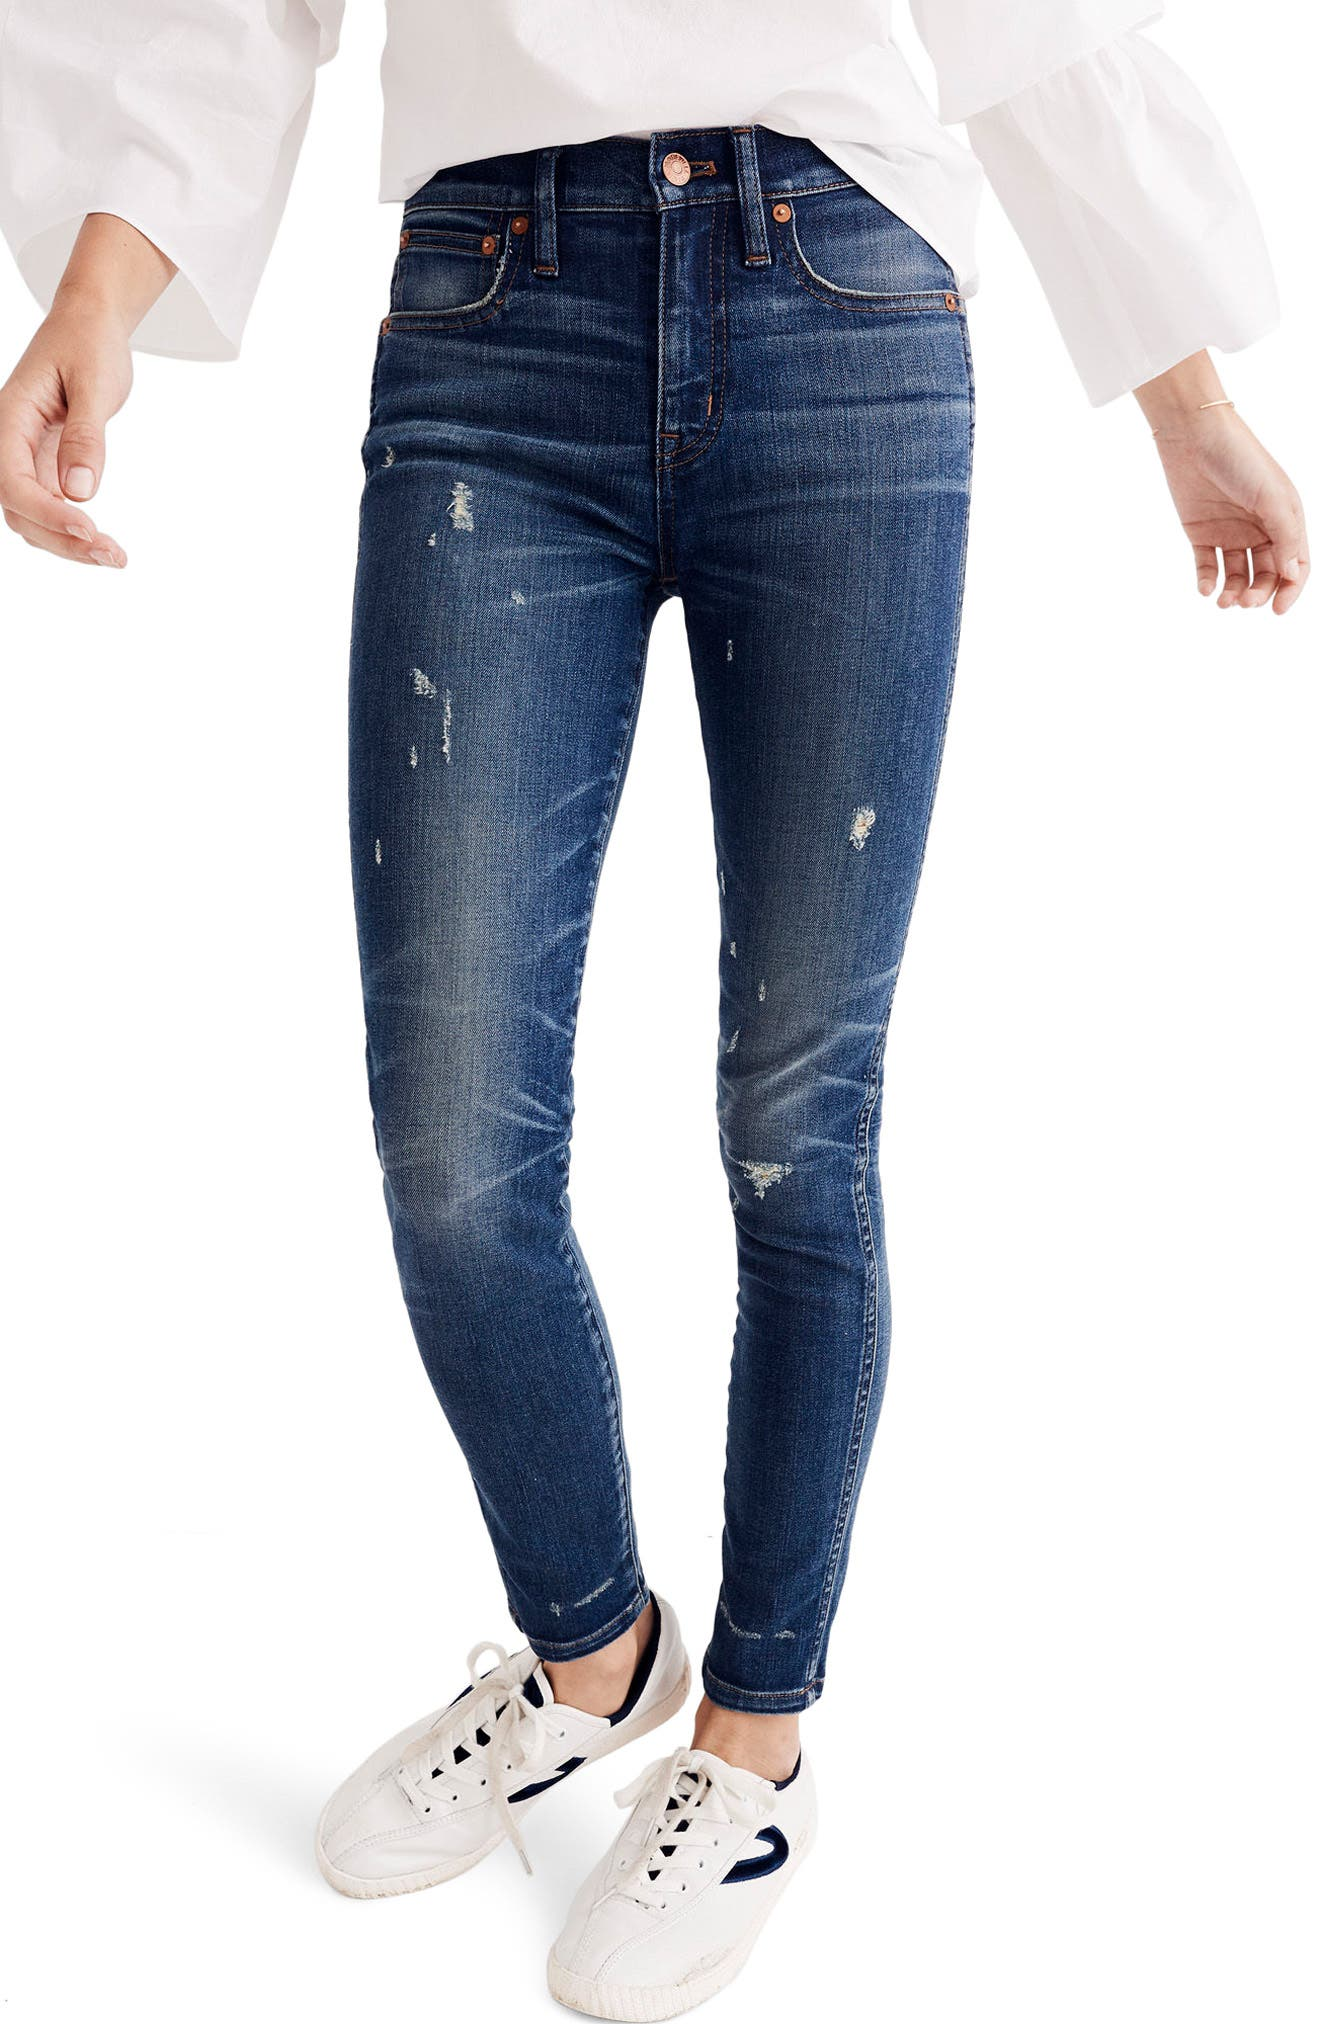 9-Inch High Waist Skinny Jeans,                             Main thumbnail 1, color,                             403